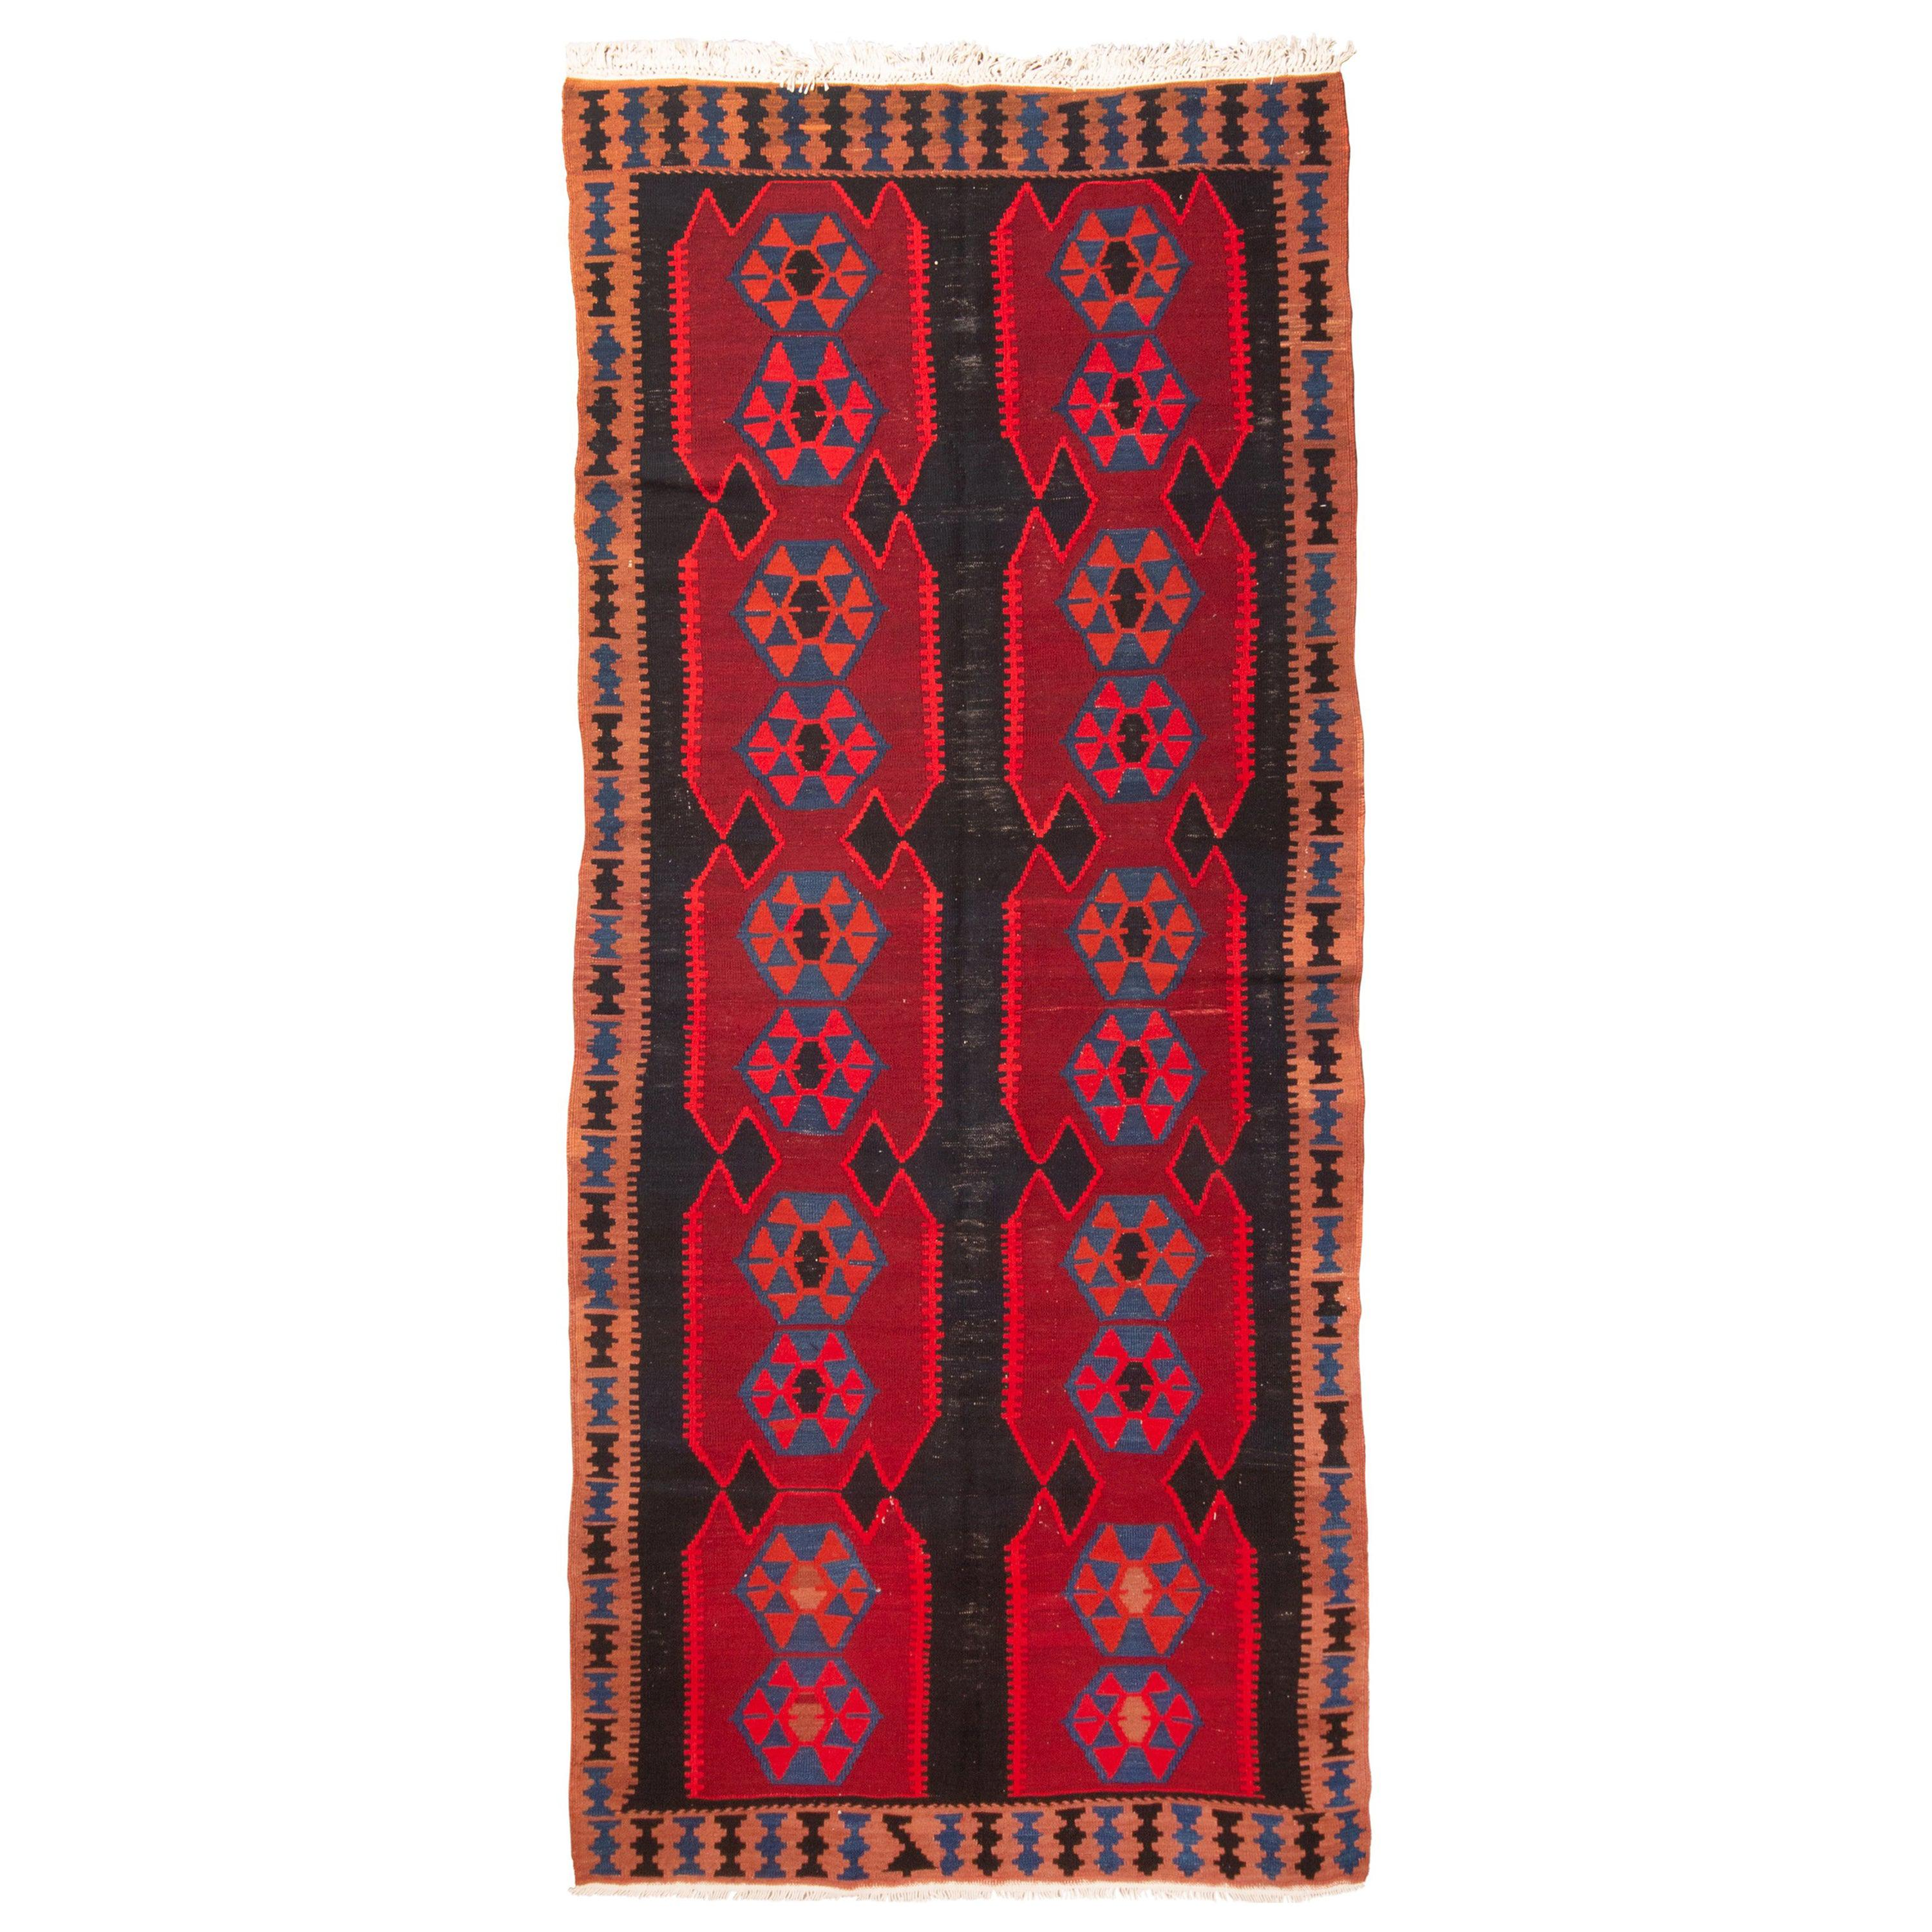 Antique Ghazvin Red and Blue Persian Wool Kilim Rug